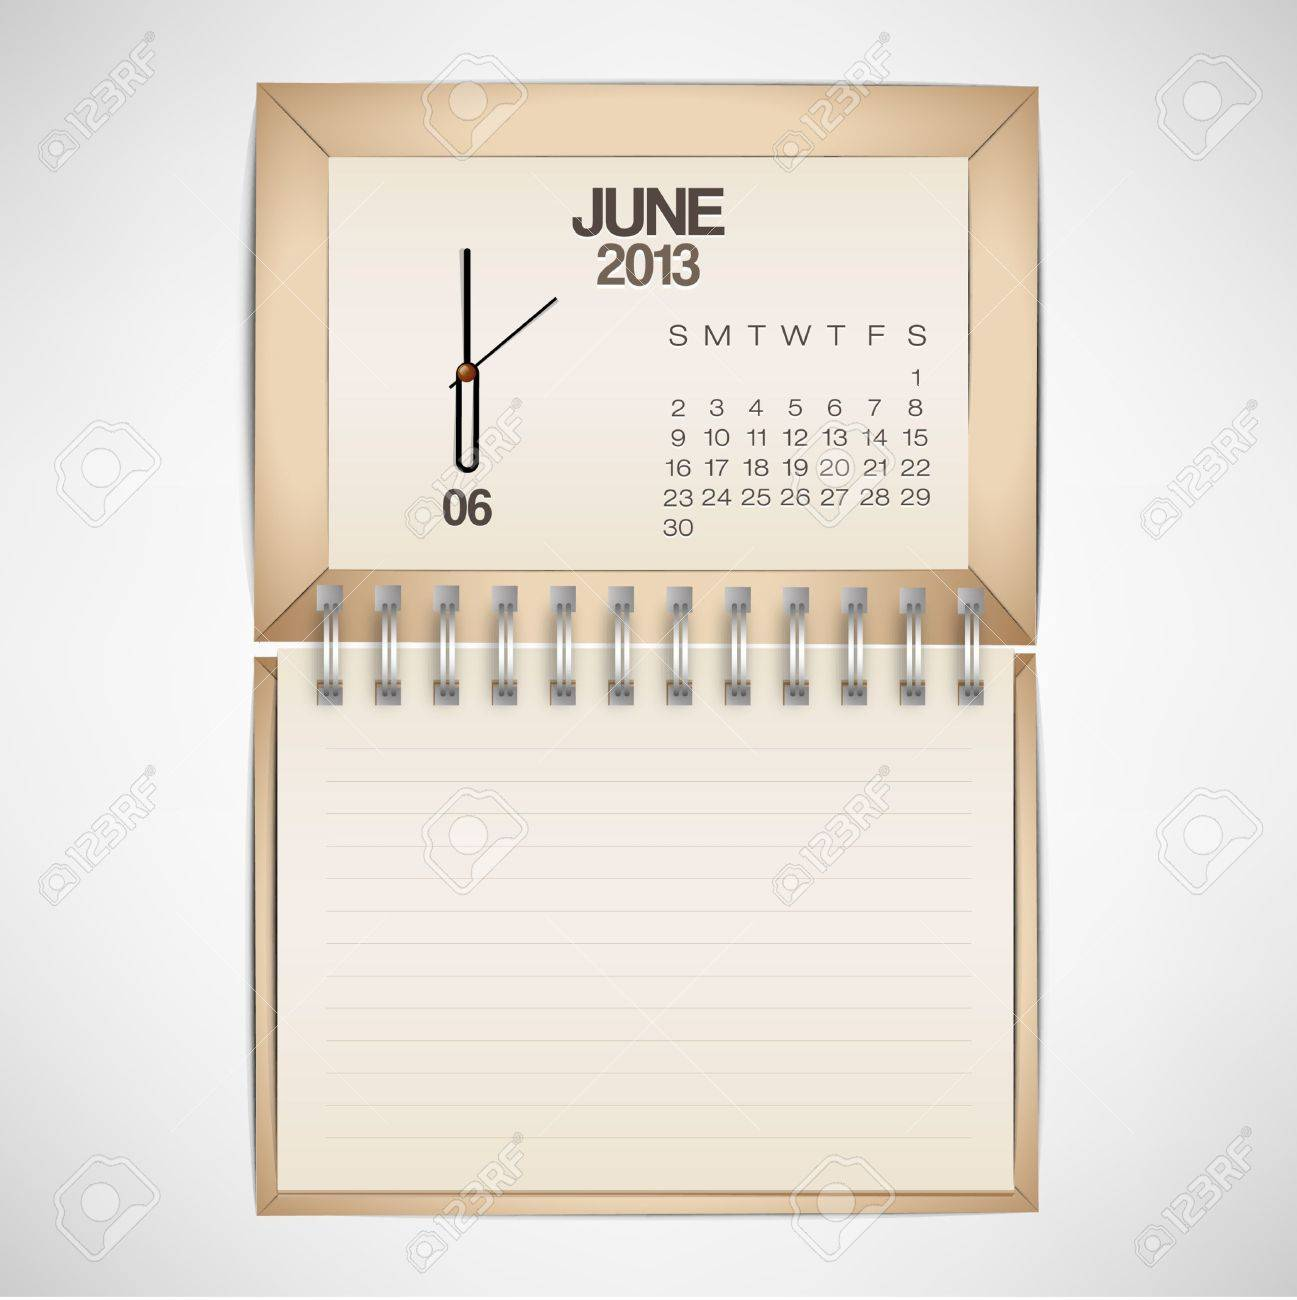 2013 Calendar June Clock Design Vector Stock Vector - 17750772